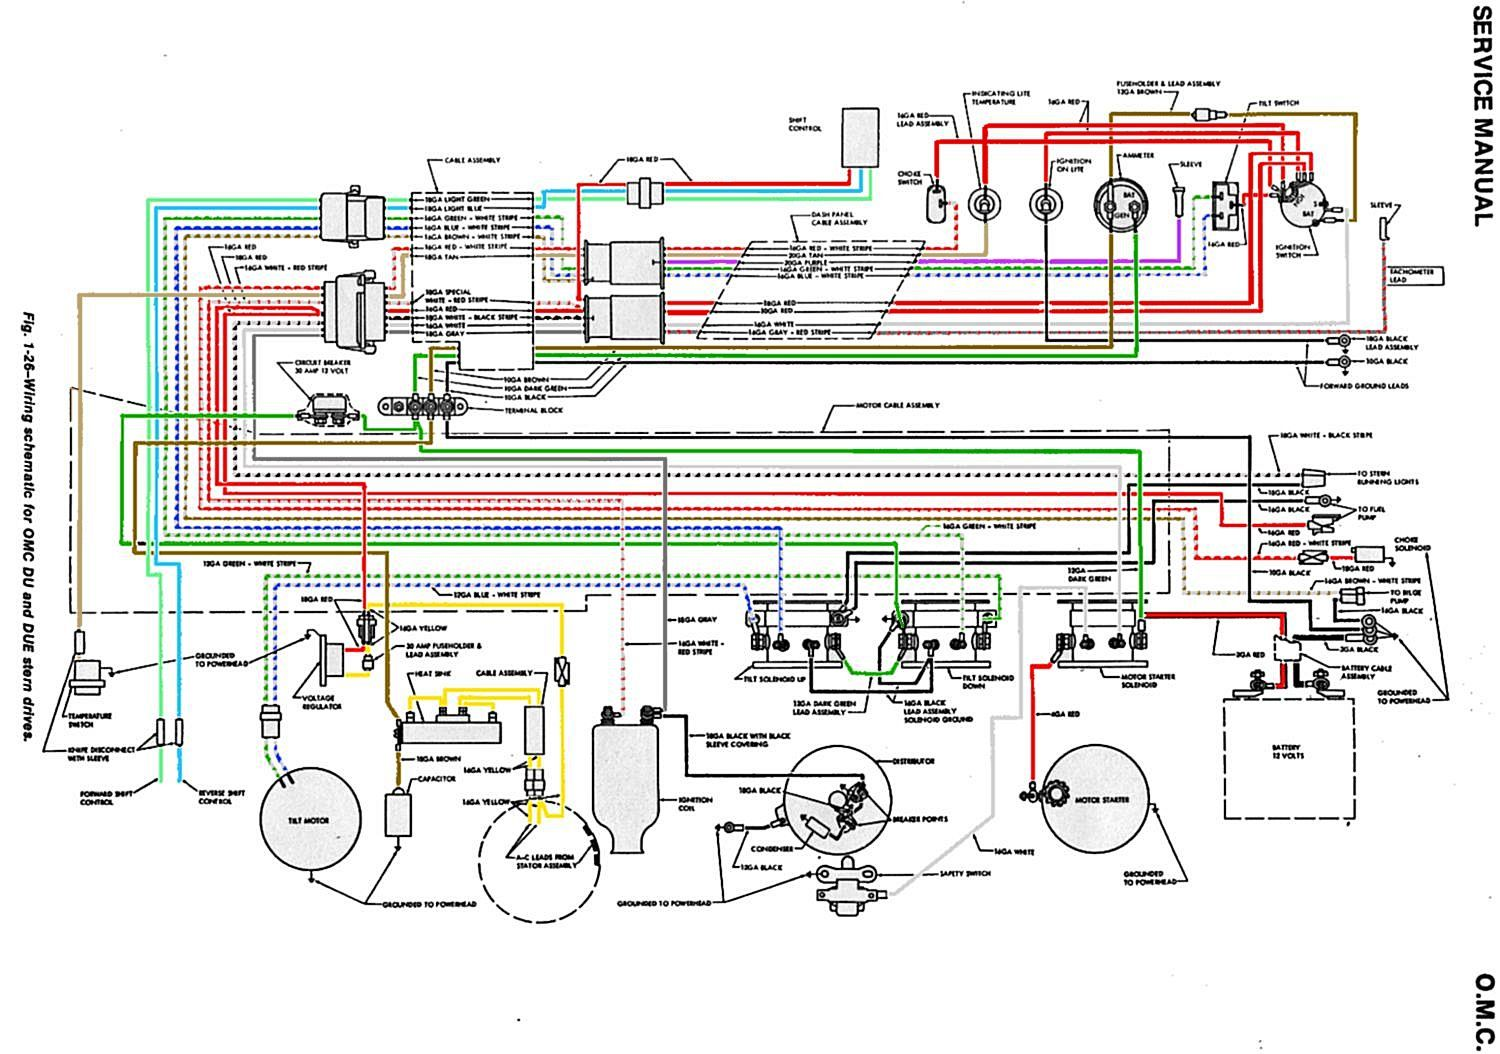 65 68_OMC_Wiring_Schematic omc boat technical info Electrical Wiring Diagrams at gsmx.co